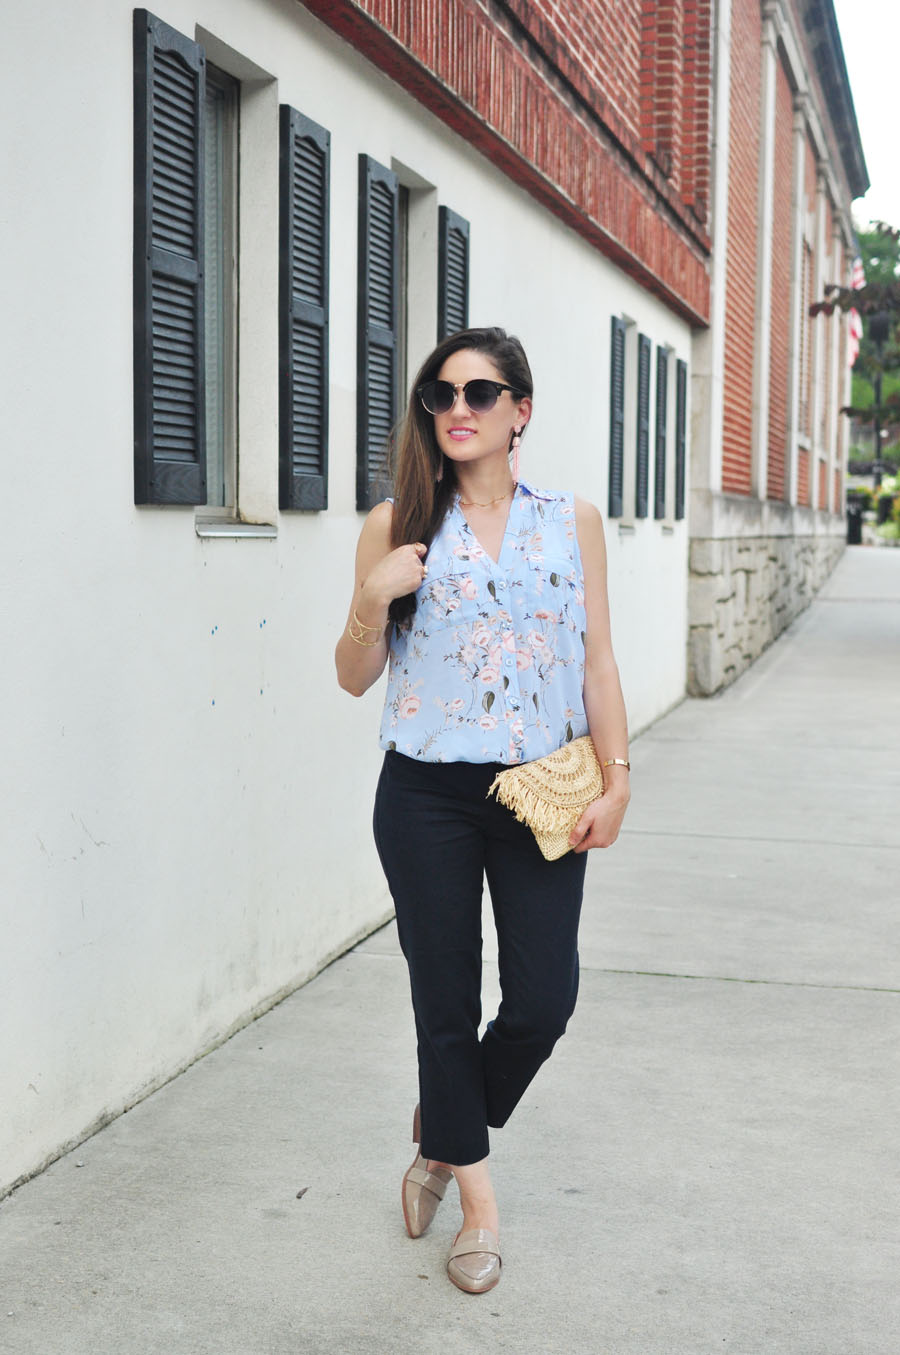 Office Style - by Fashion and Style Blogger Erica Valentin